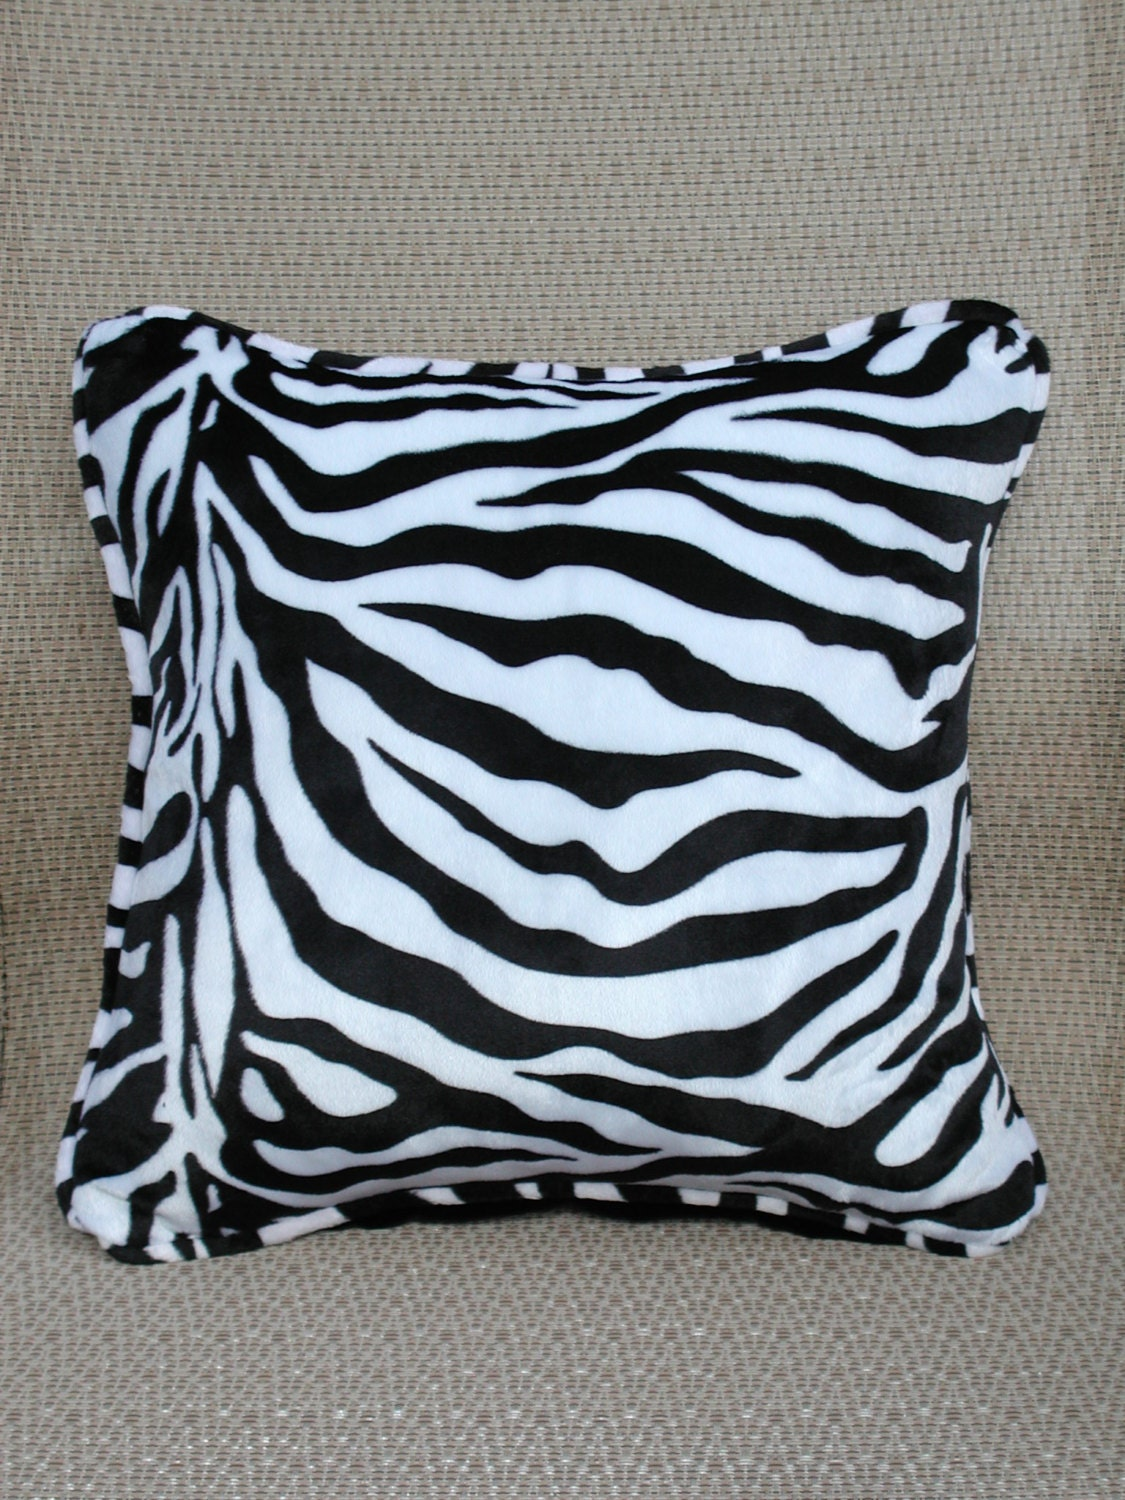 Zebra Throw Pillows Zebra Toss Pillows Luxury Pillows Black